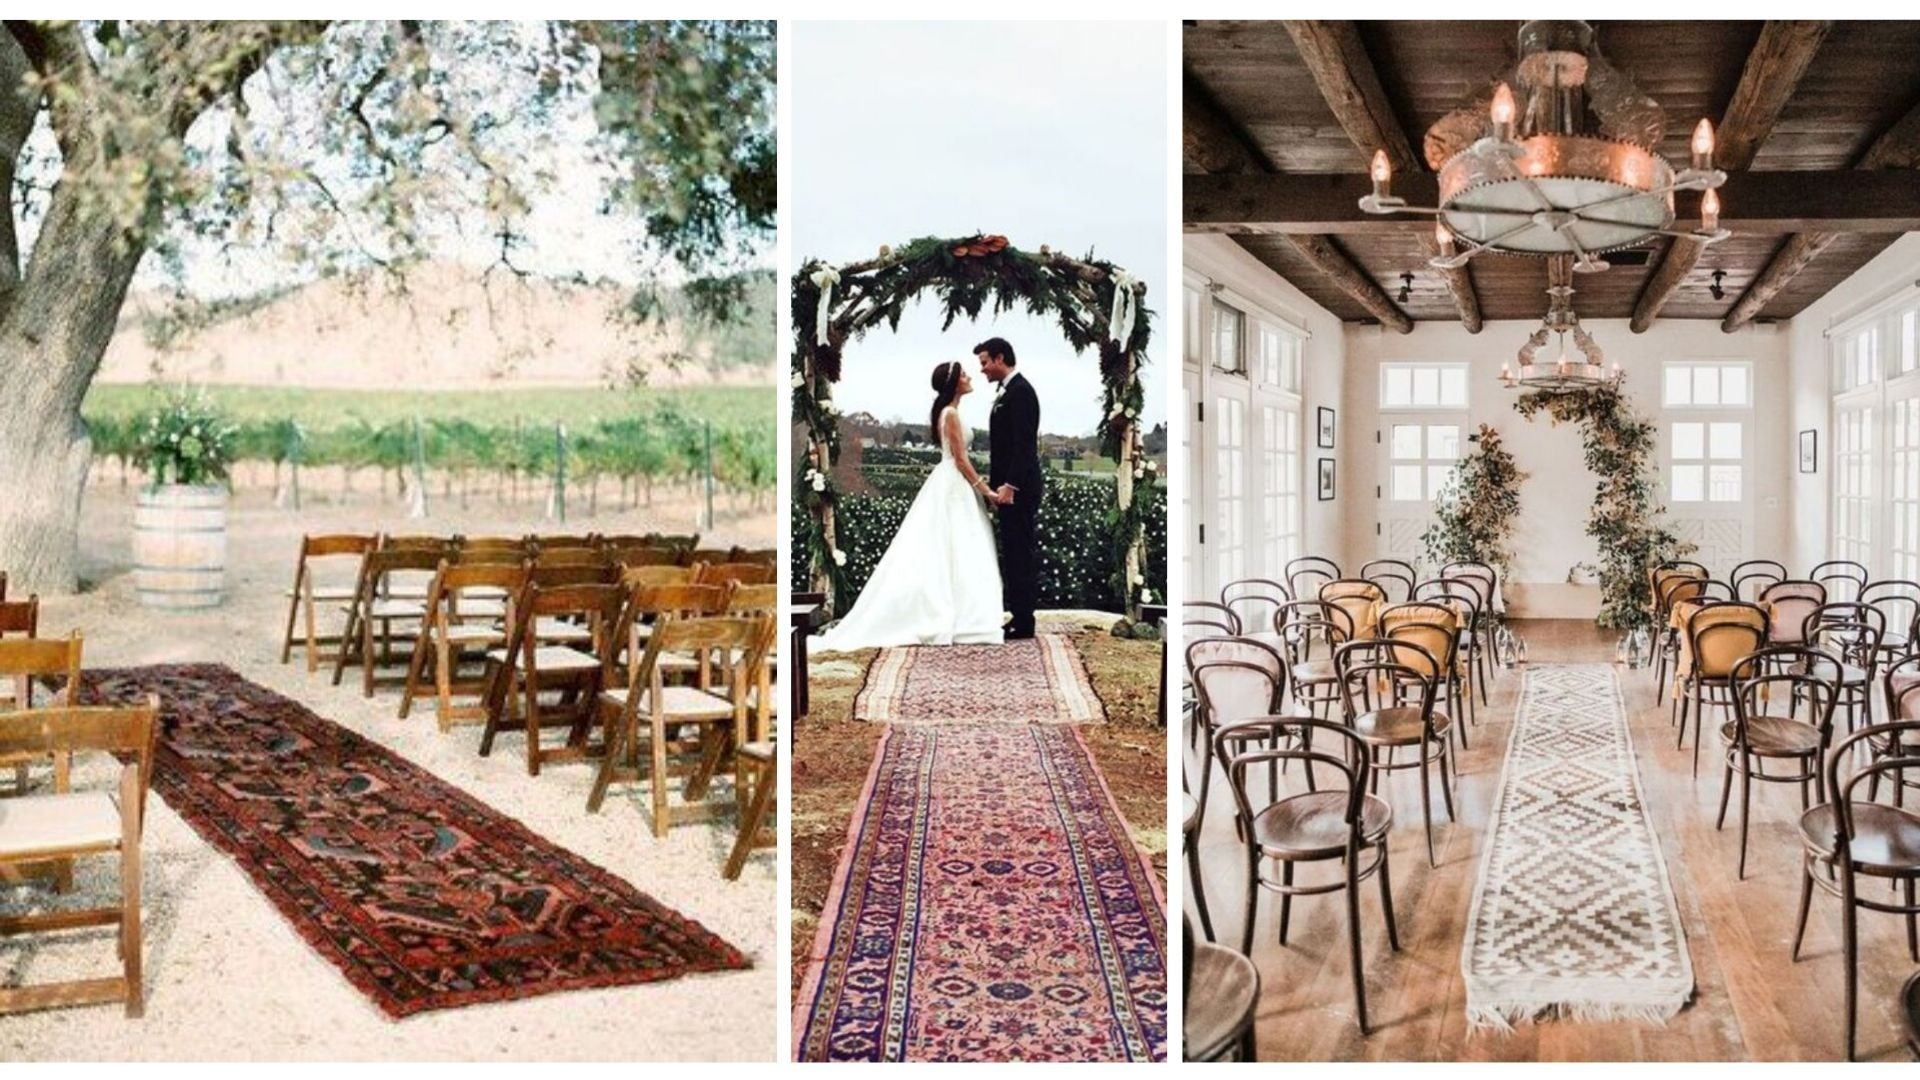 walk down the aisle on a persian runner